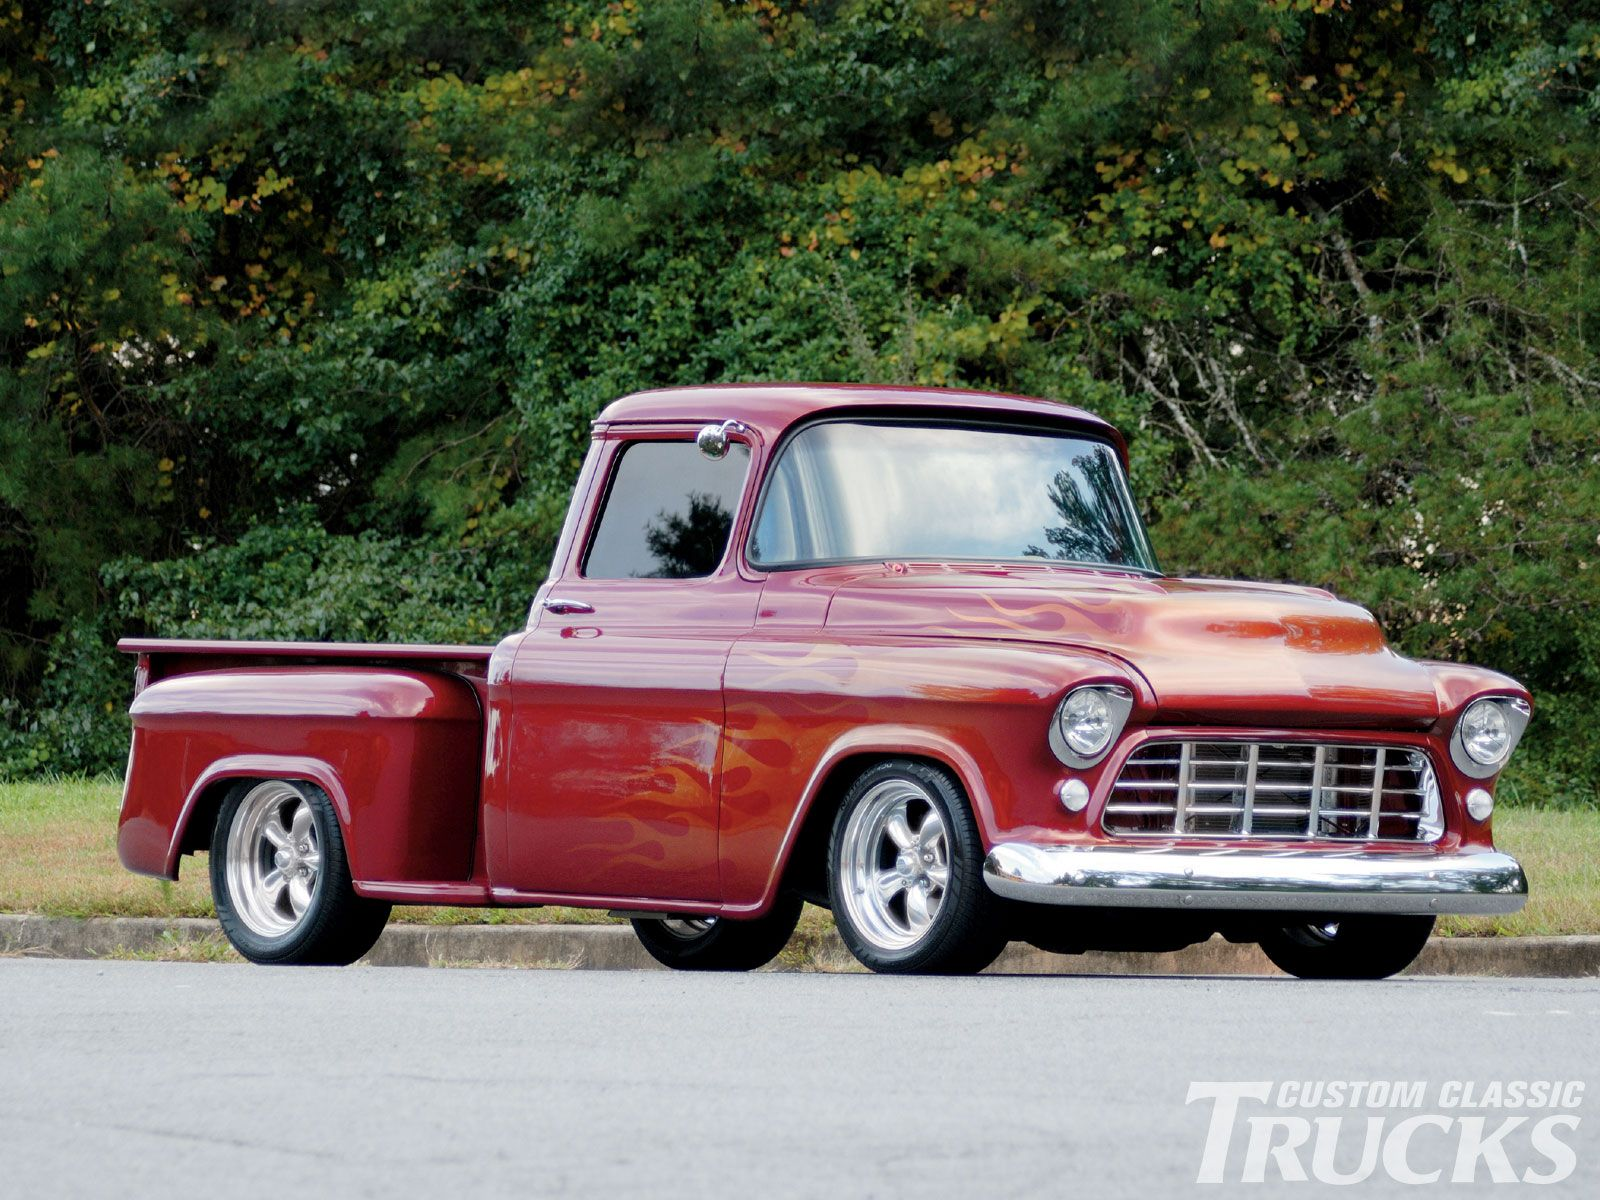 Custom Pickup Trucks | 1957 Chevy Pickup Truck Custom Flame Paint ...